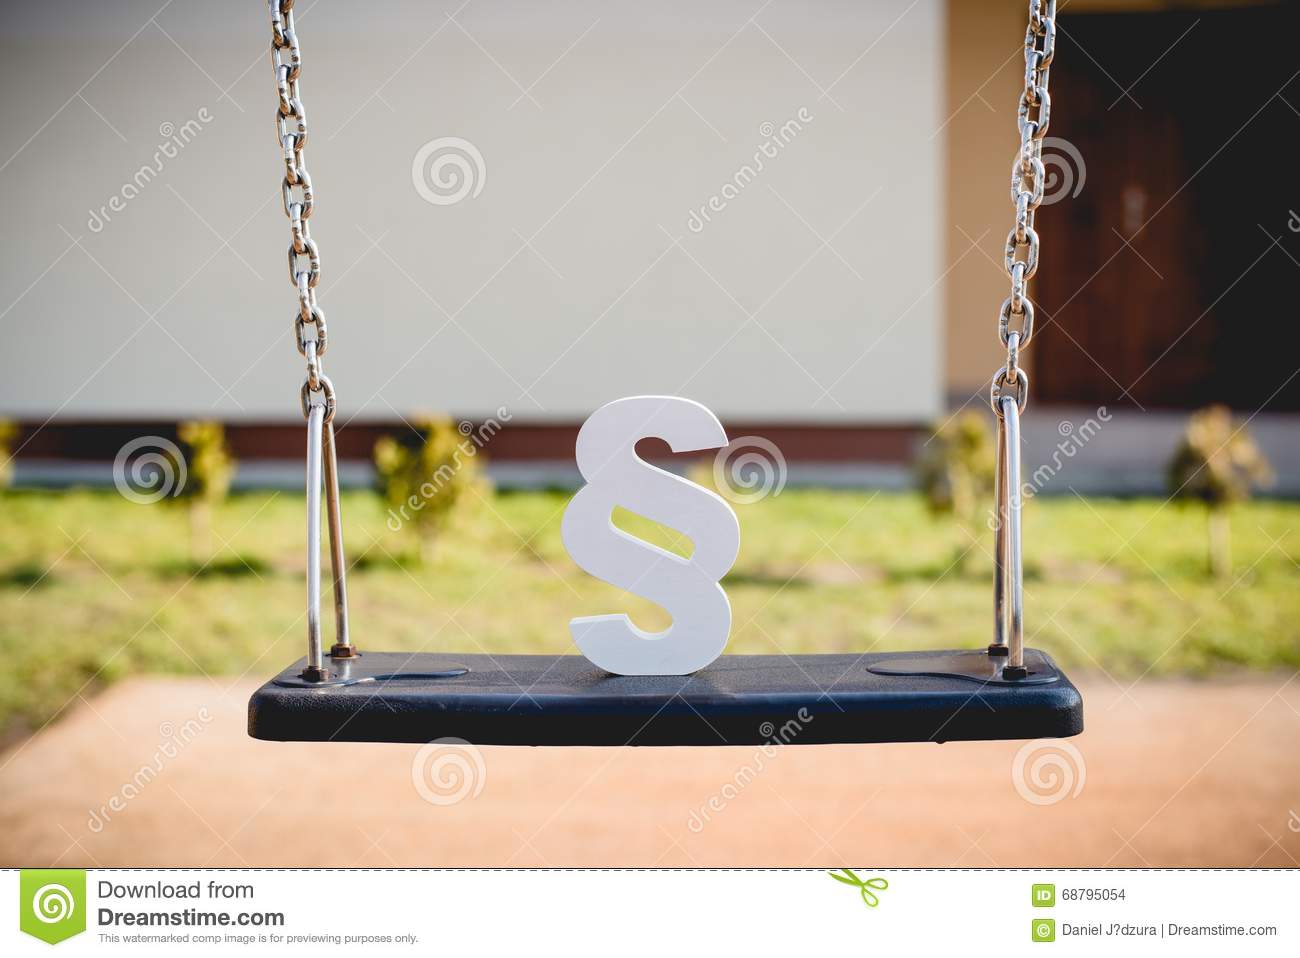 White Paragraph Symbol On Children Chain Swing Stock Photo Image